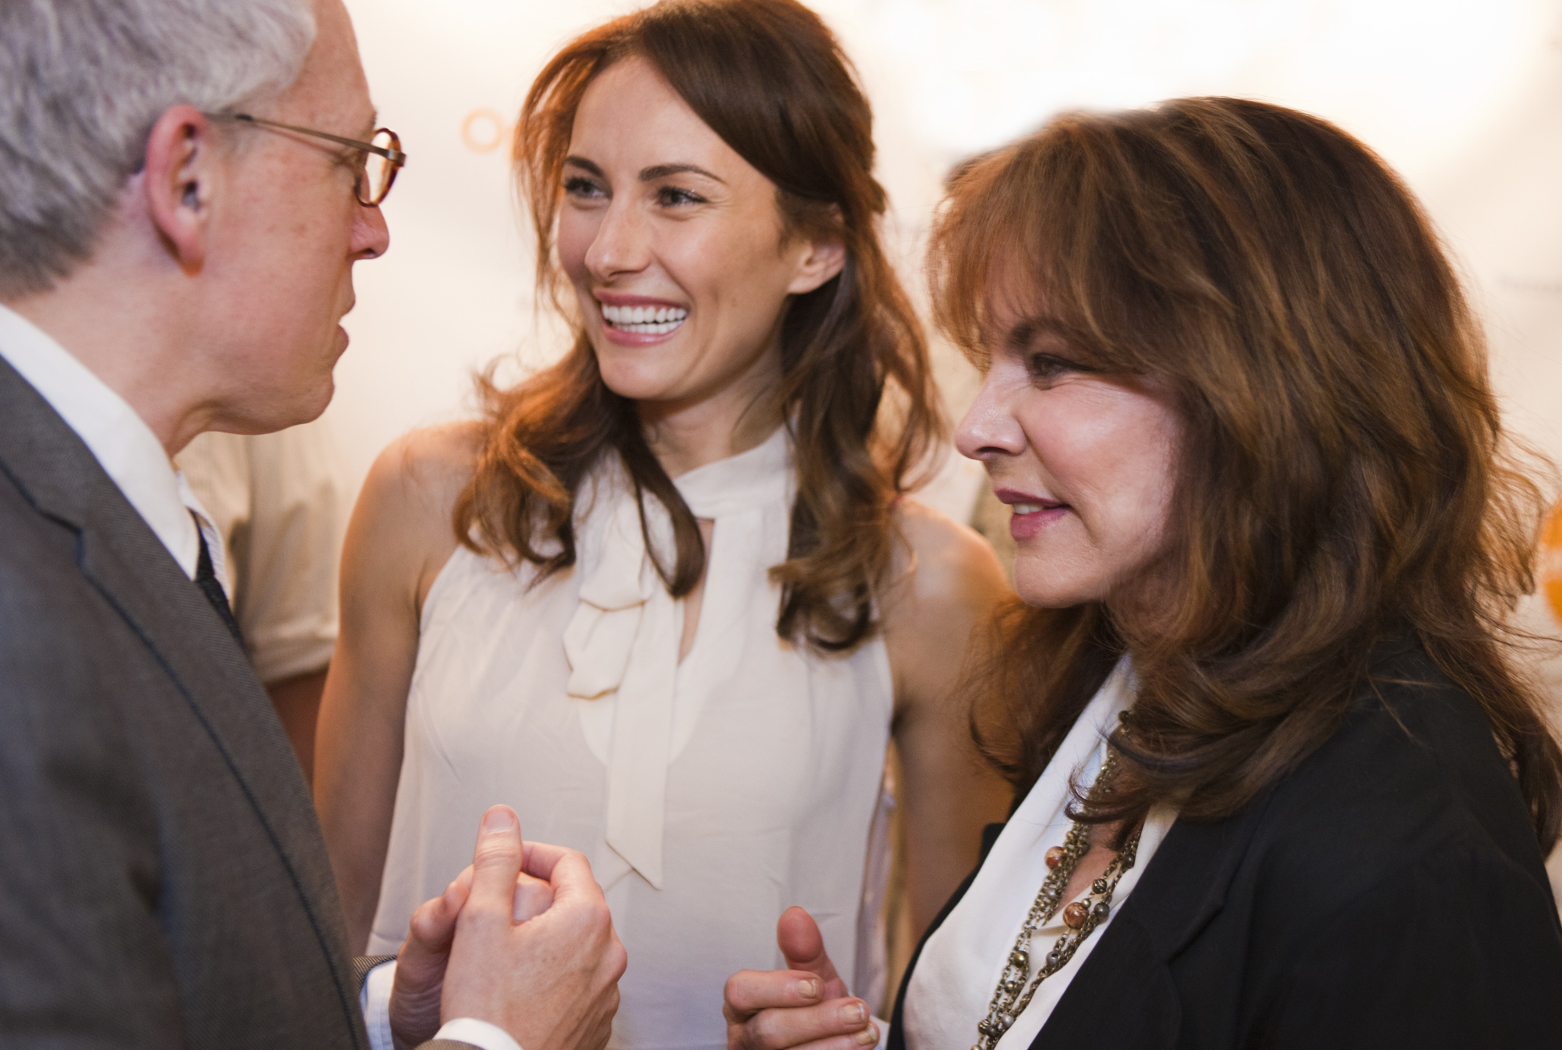 playwright Donald Margulies and stars Laura Benanti and Stockard Channing